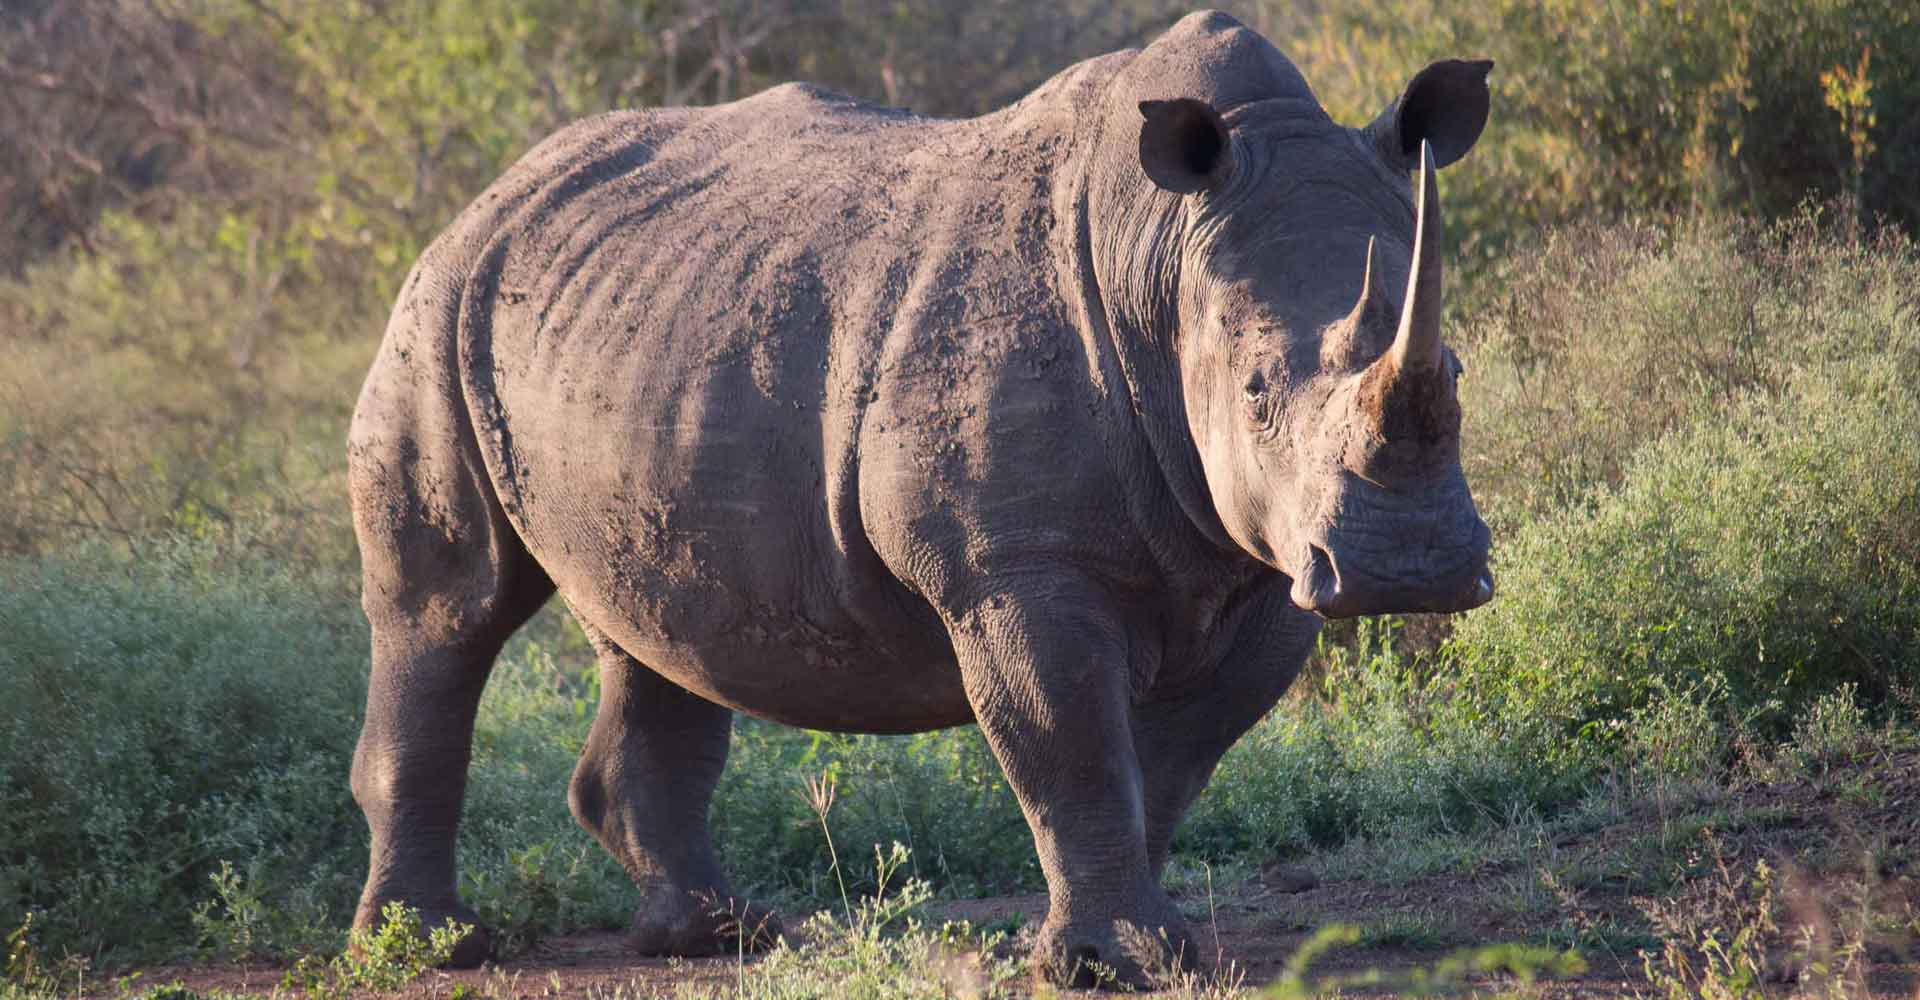 Photo taken in Swaziland of a rhino during a tour to Swaziland from Maputo by Mabeco tours